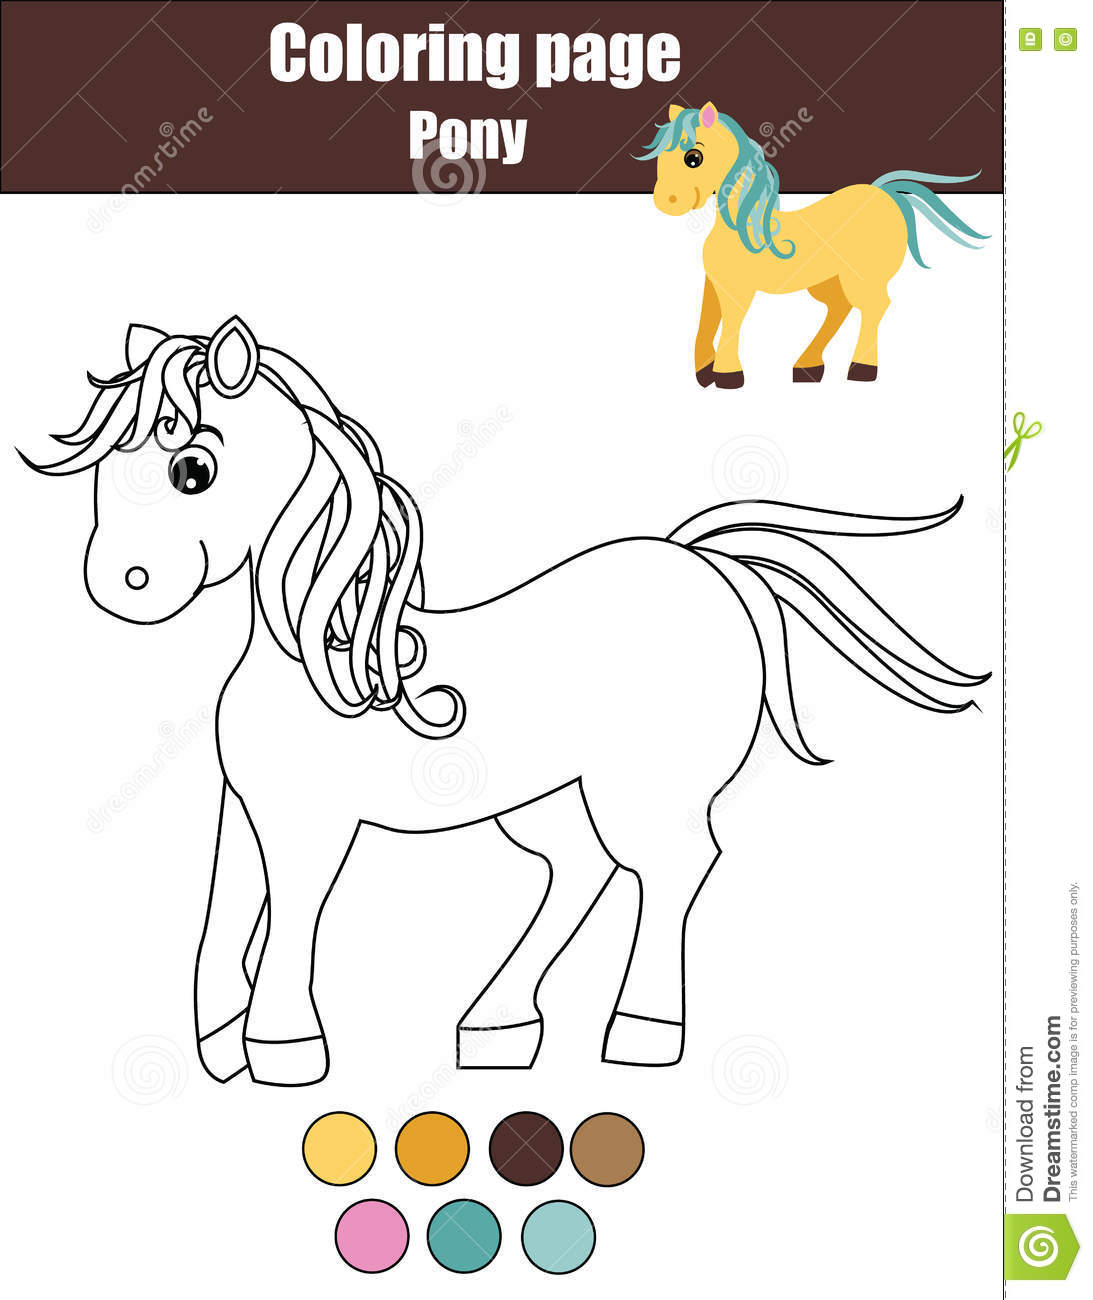 Coloring Page With Cute Pony, Horse. Educational Game, Drawing Kids ...